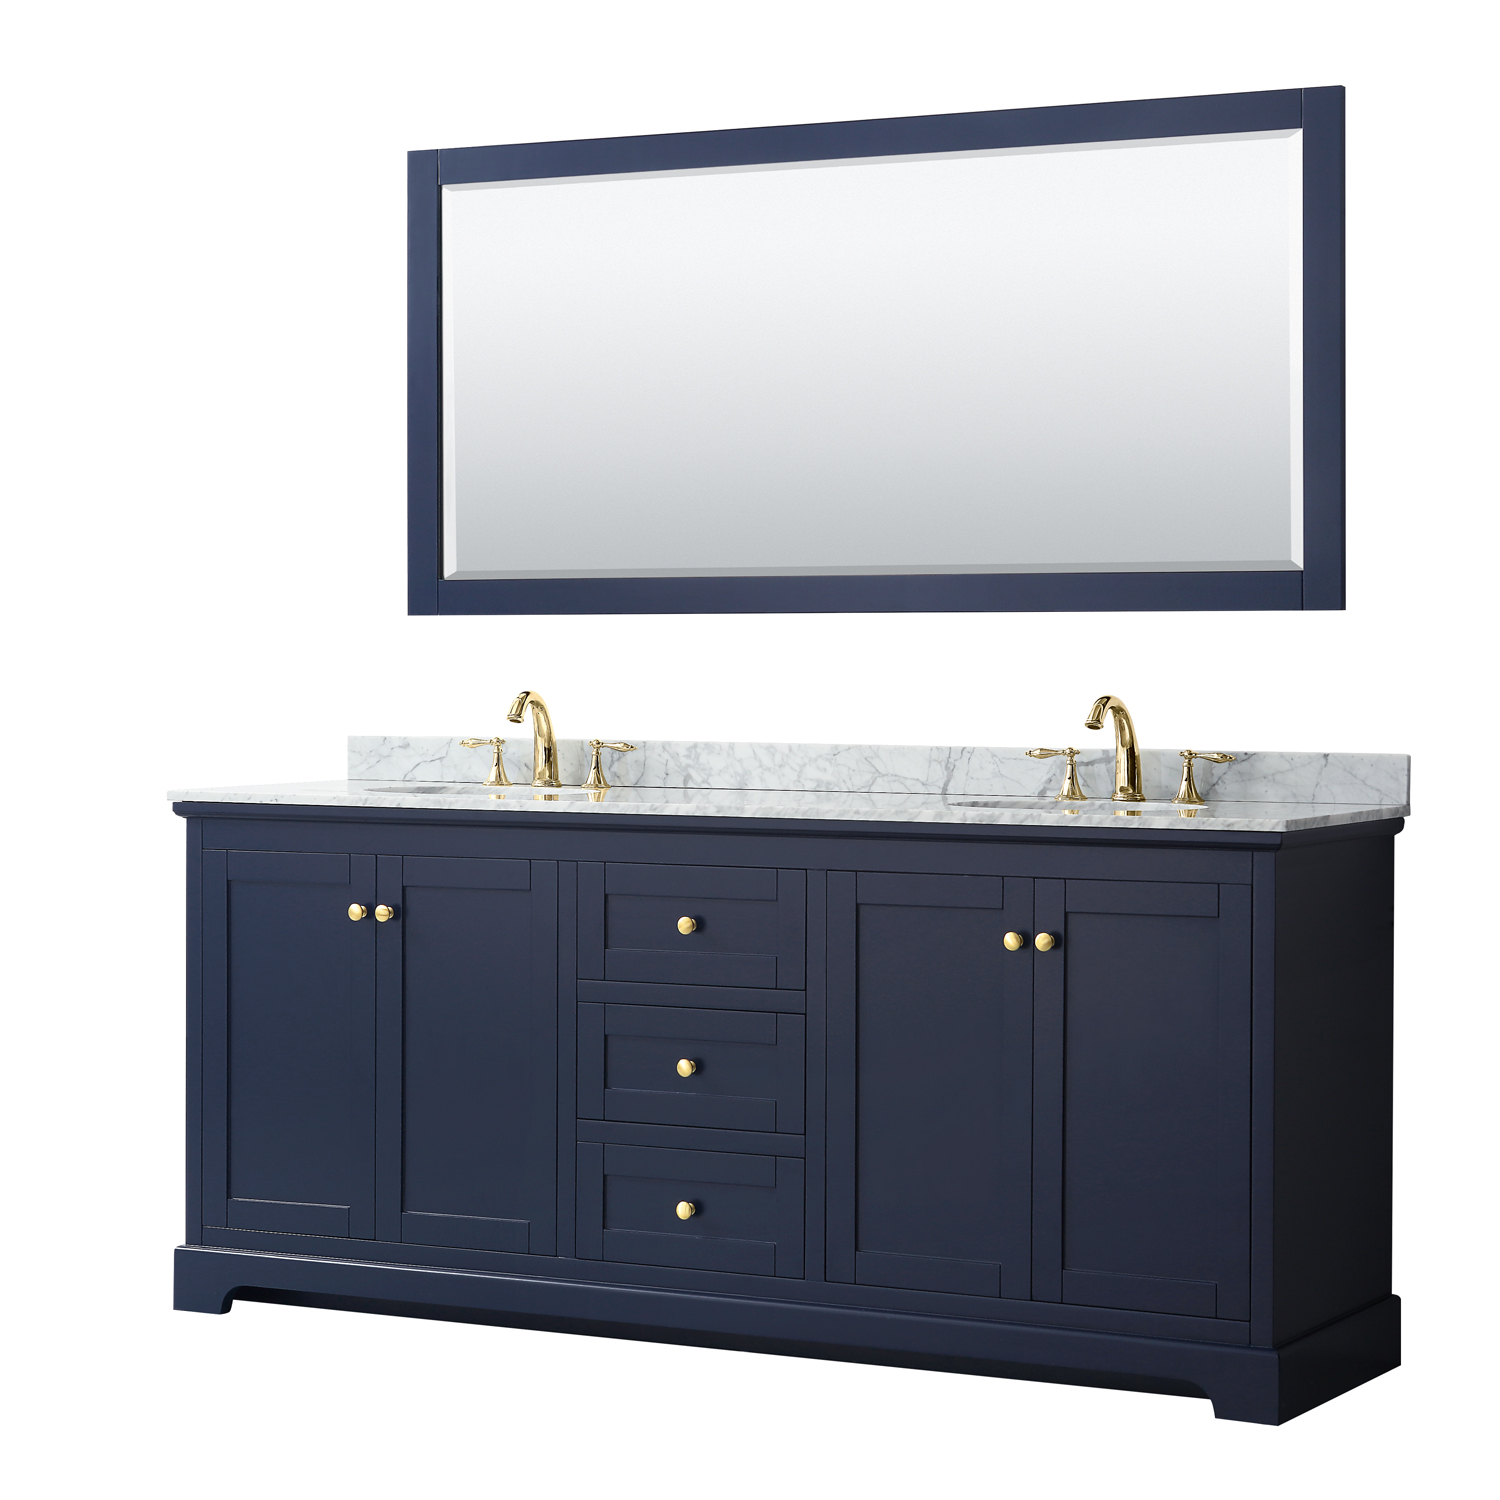 Avery 80 Double Bathroom Vanity Dark Blue Beautiful Bathroom Furniture For Every Home Wyndham Collection